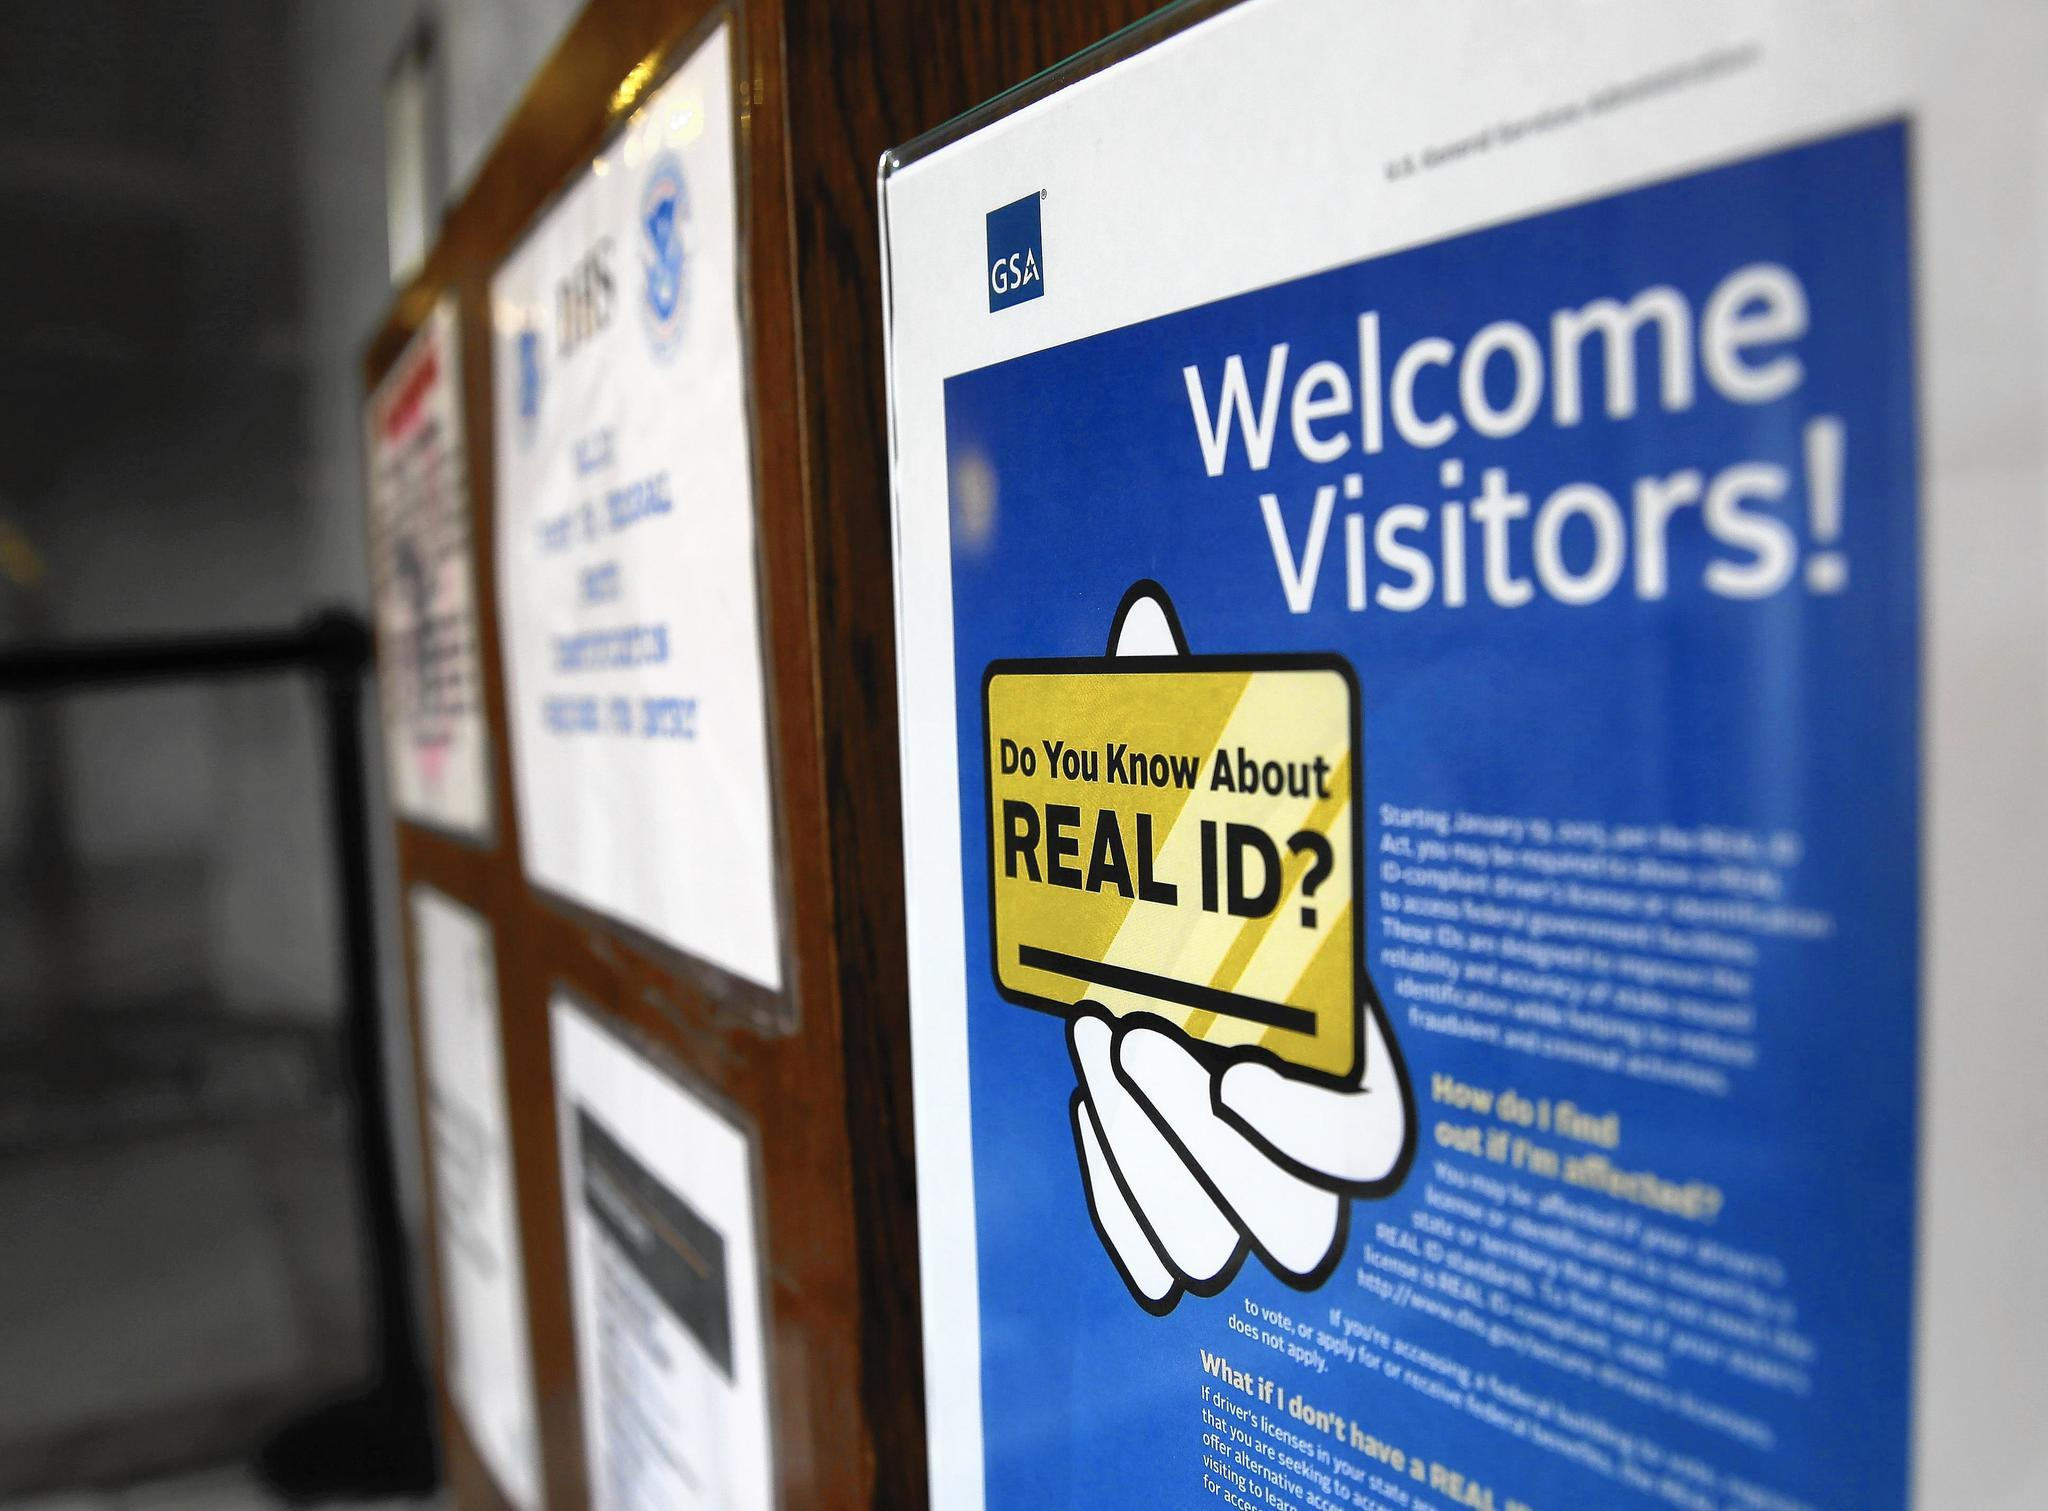 Pennsylvania moves closer to complying with real id law the pennsylvania moves closer to complying with real id law the morning call 1betcityfo Image collections